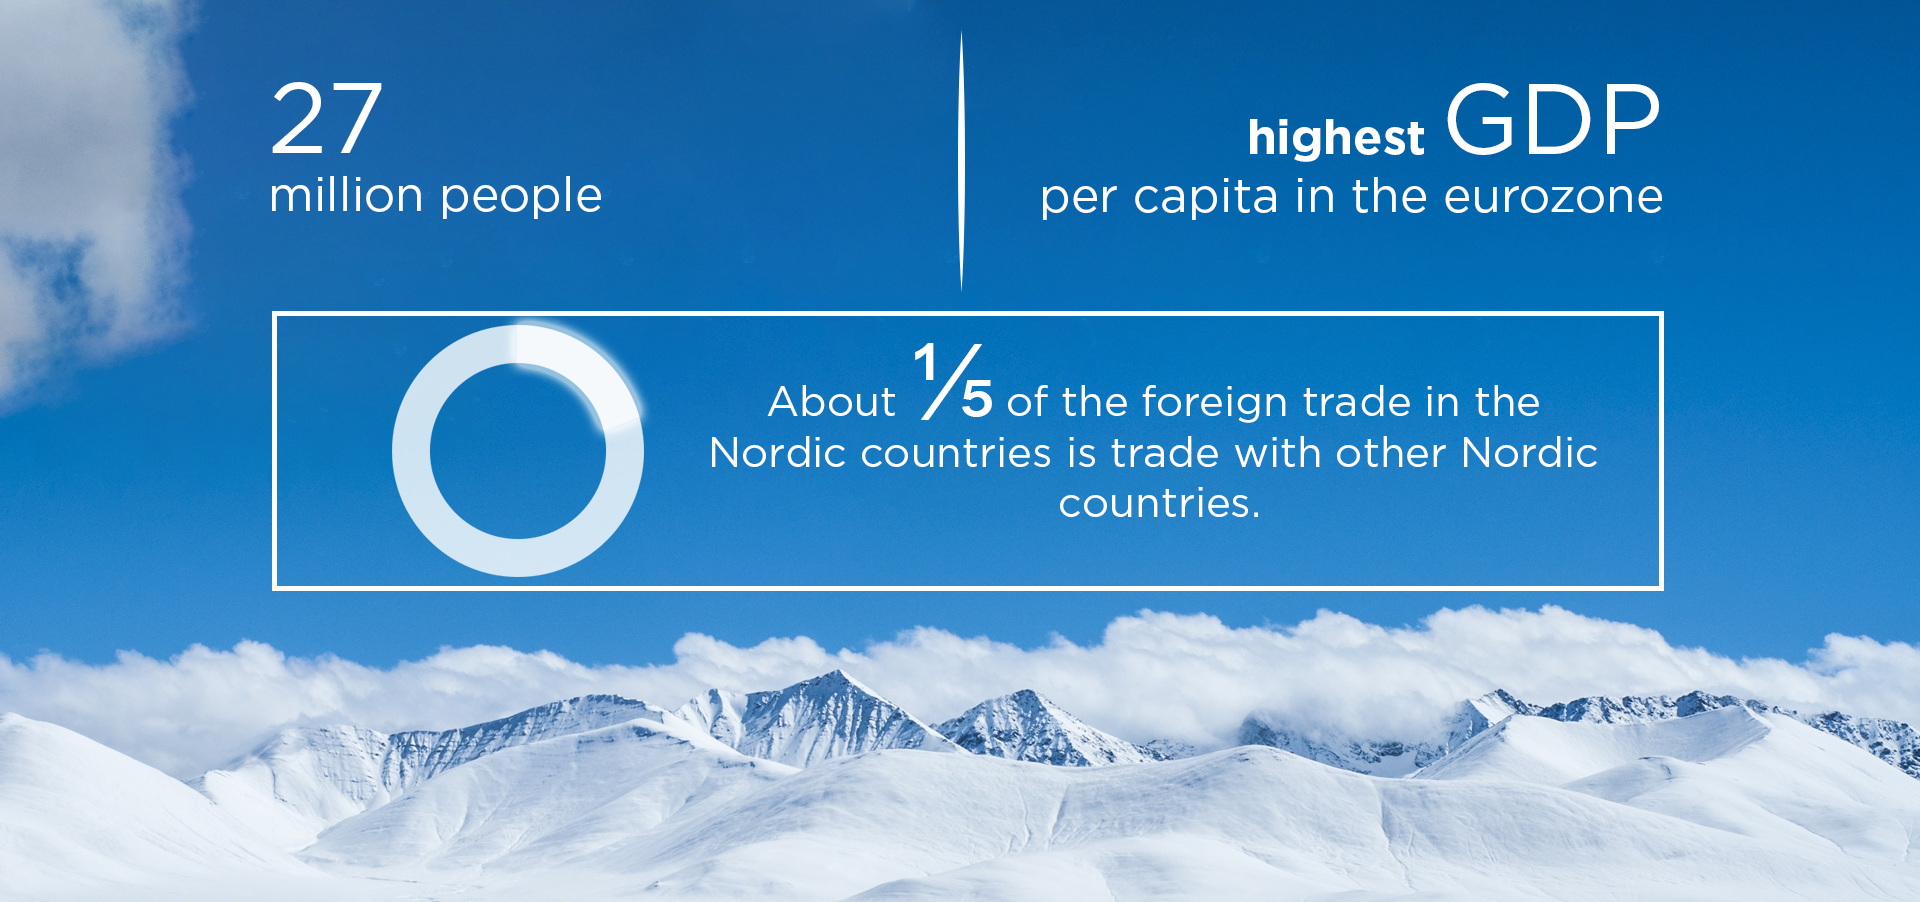 Stats about the Nordic countries which explain the need for Nordic language translations